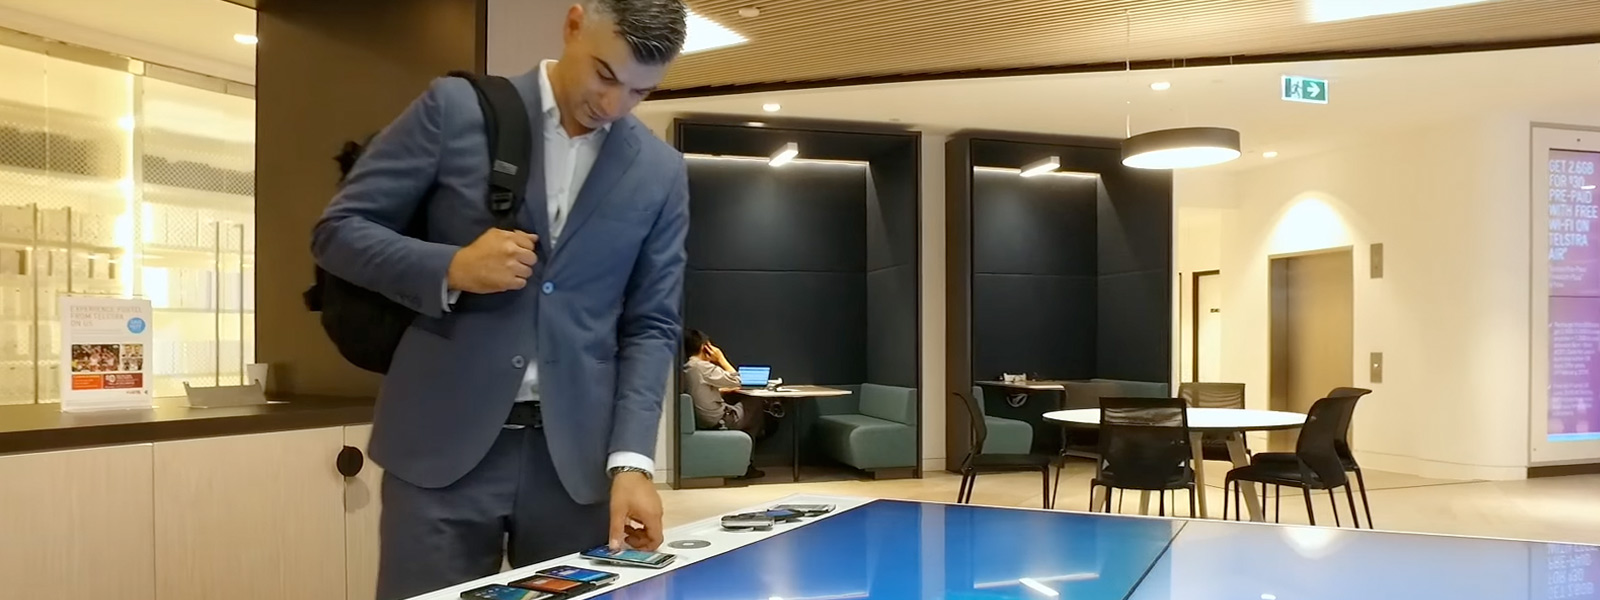 Businessman interacting with devices